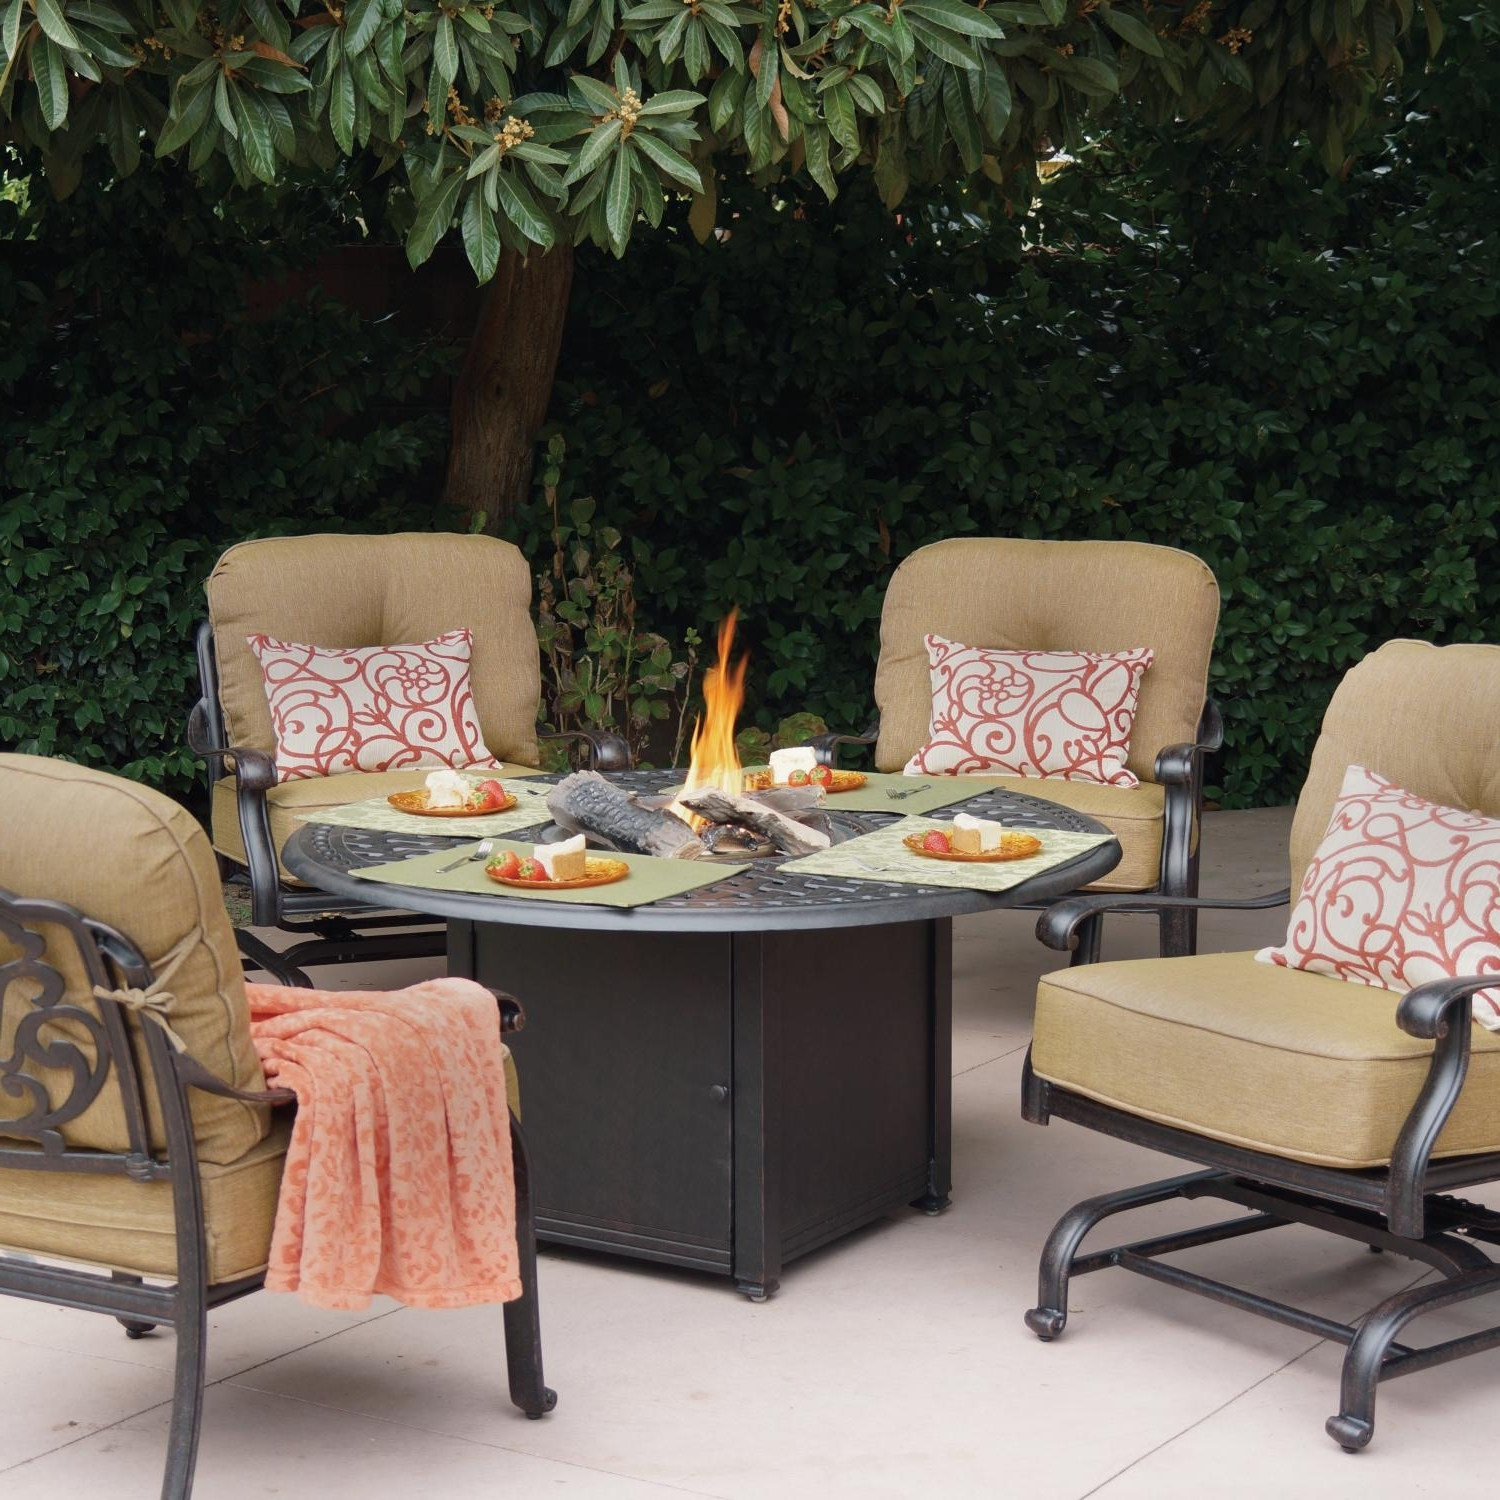 Patio Conversation Sets With Fire Pit Table In Widely Used Darlee Elisabeth 5 Piece Aluminum Patio Fire Pit Seating Set (View 2 of 15)